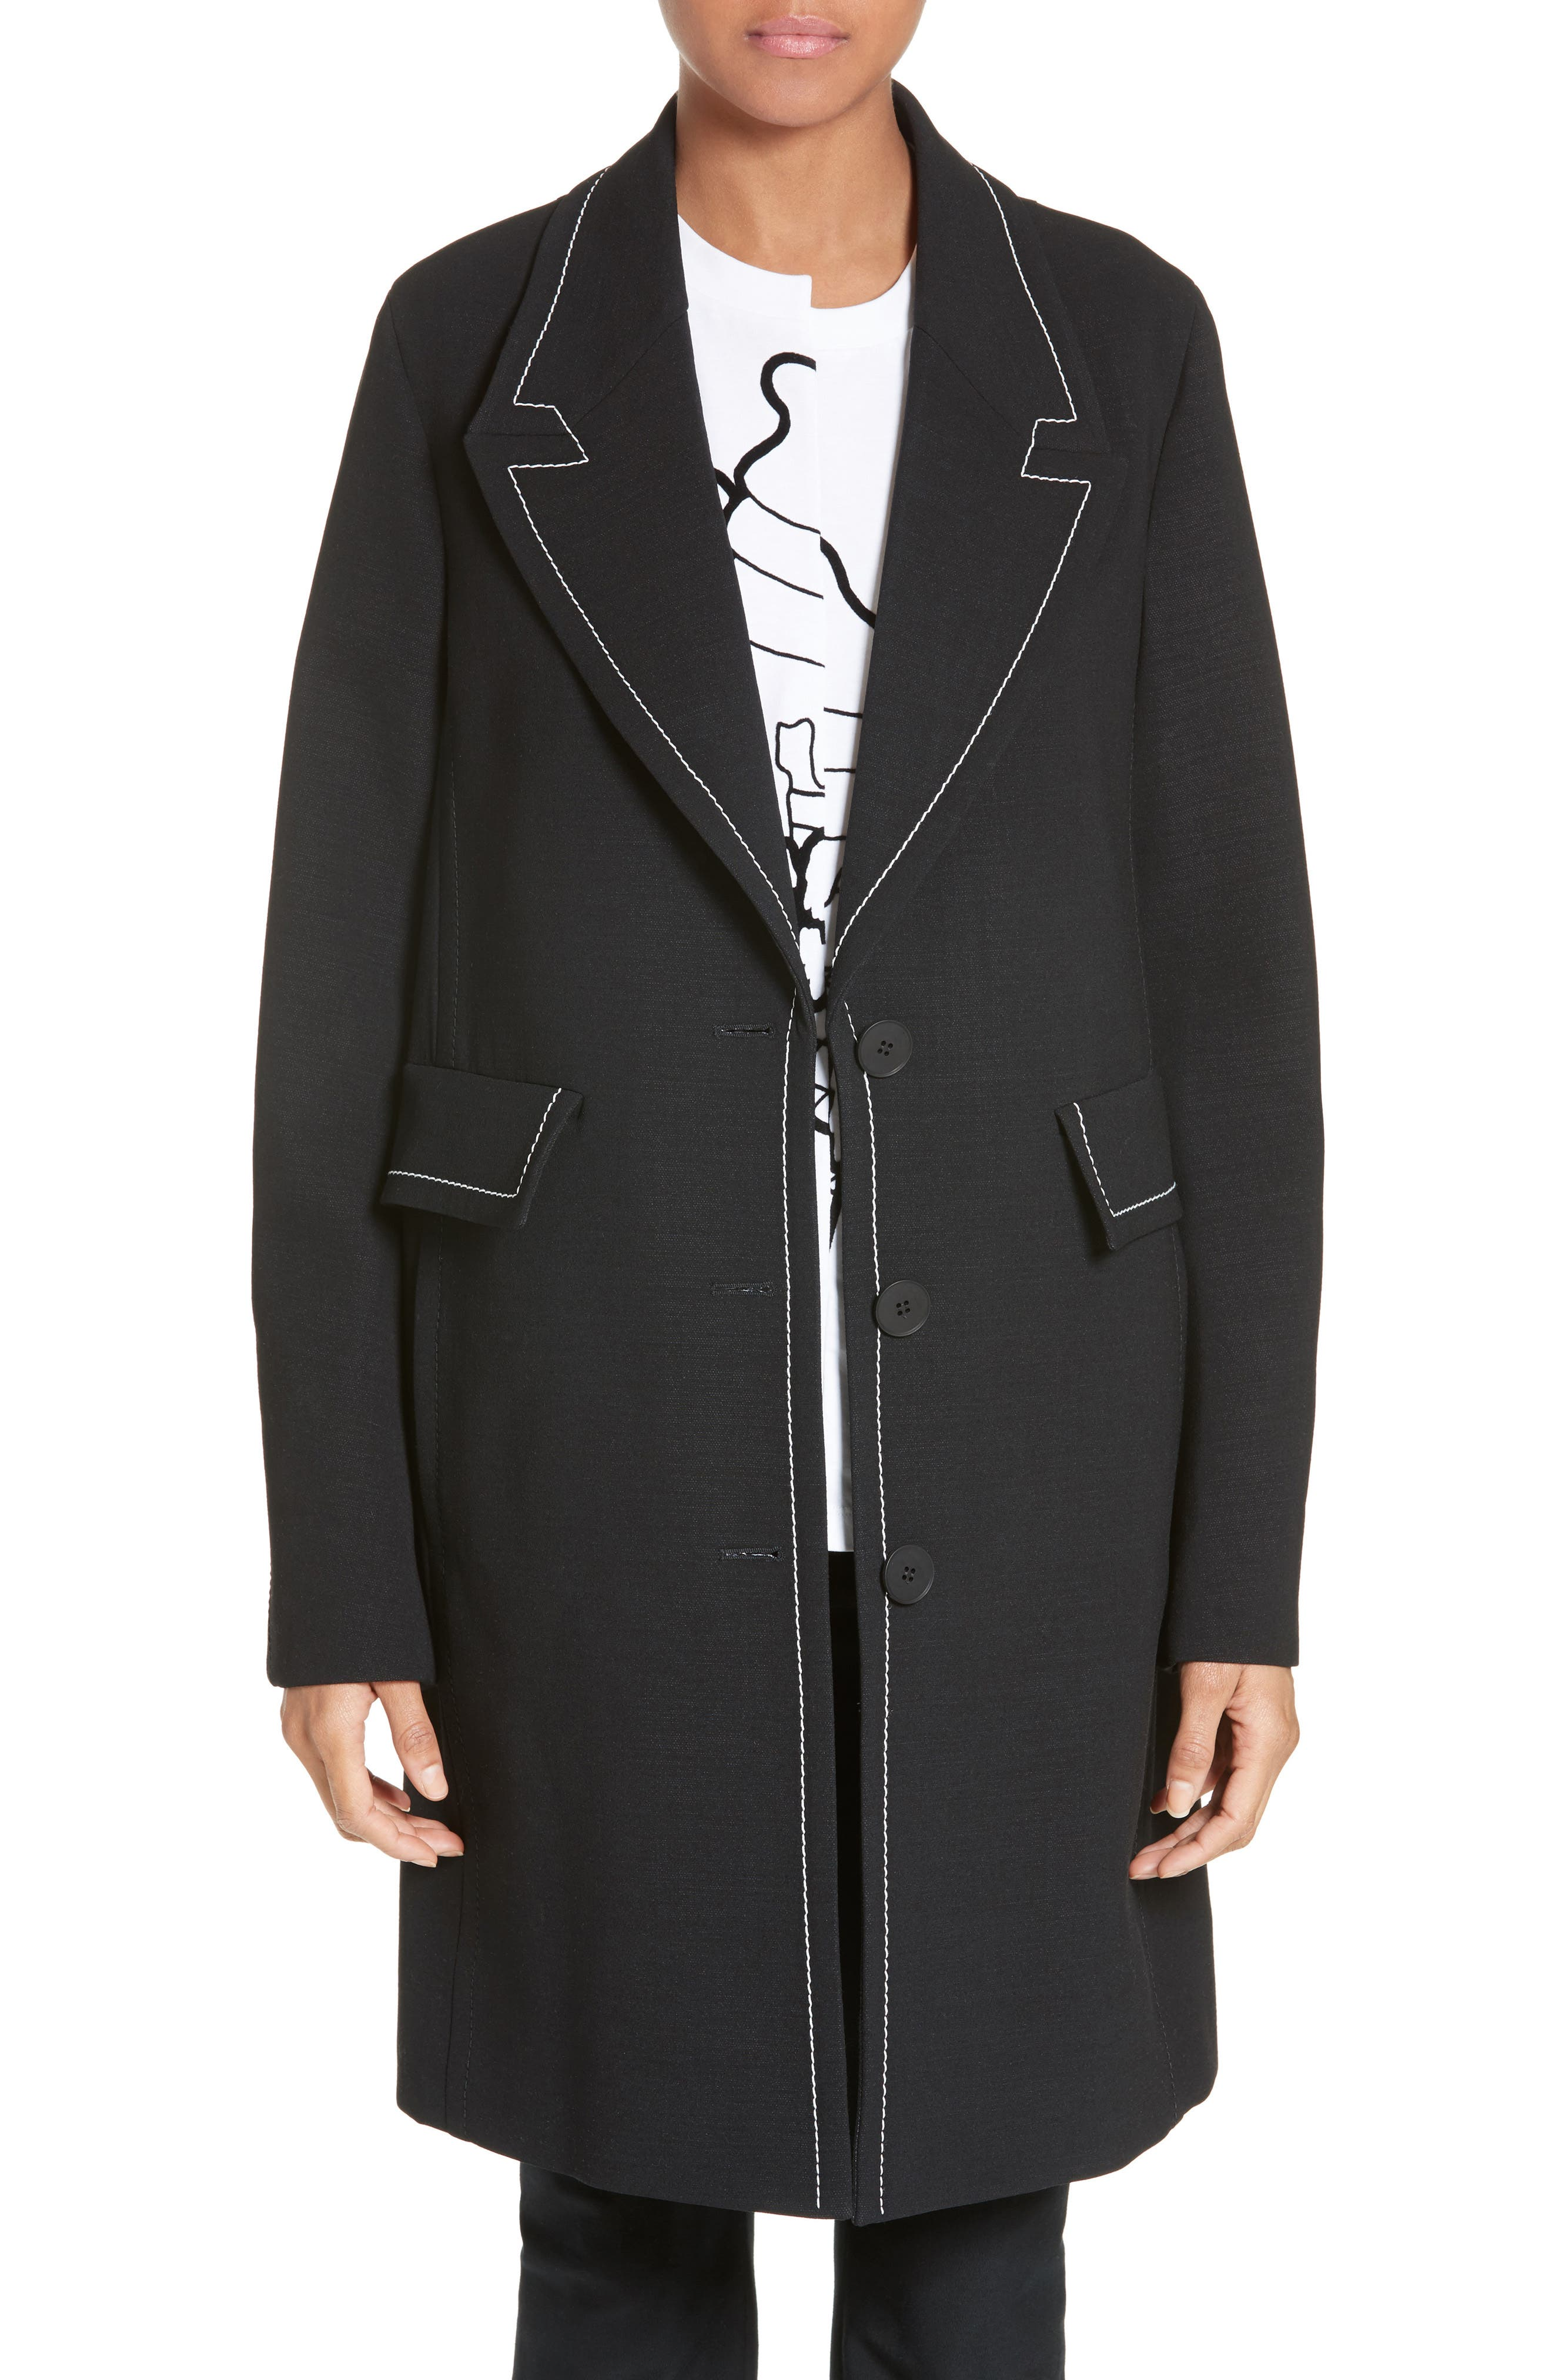 Marcelline Topstitch Double Face Wool Coat,                             Main thumbnail 1, color,                             001